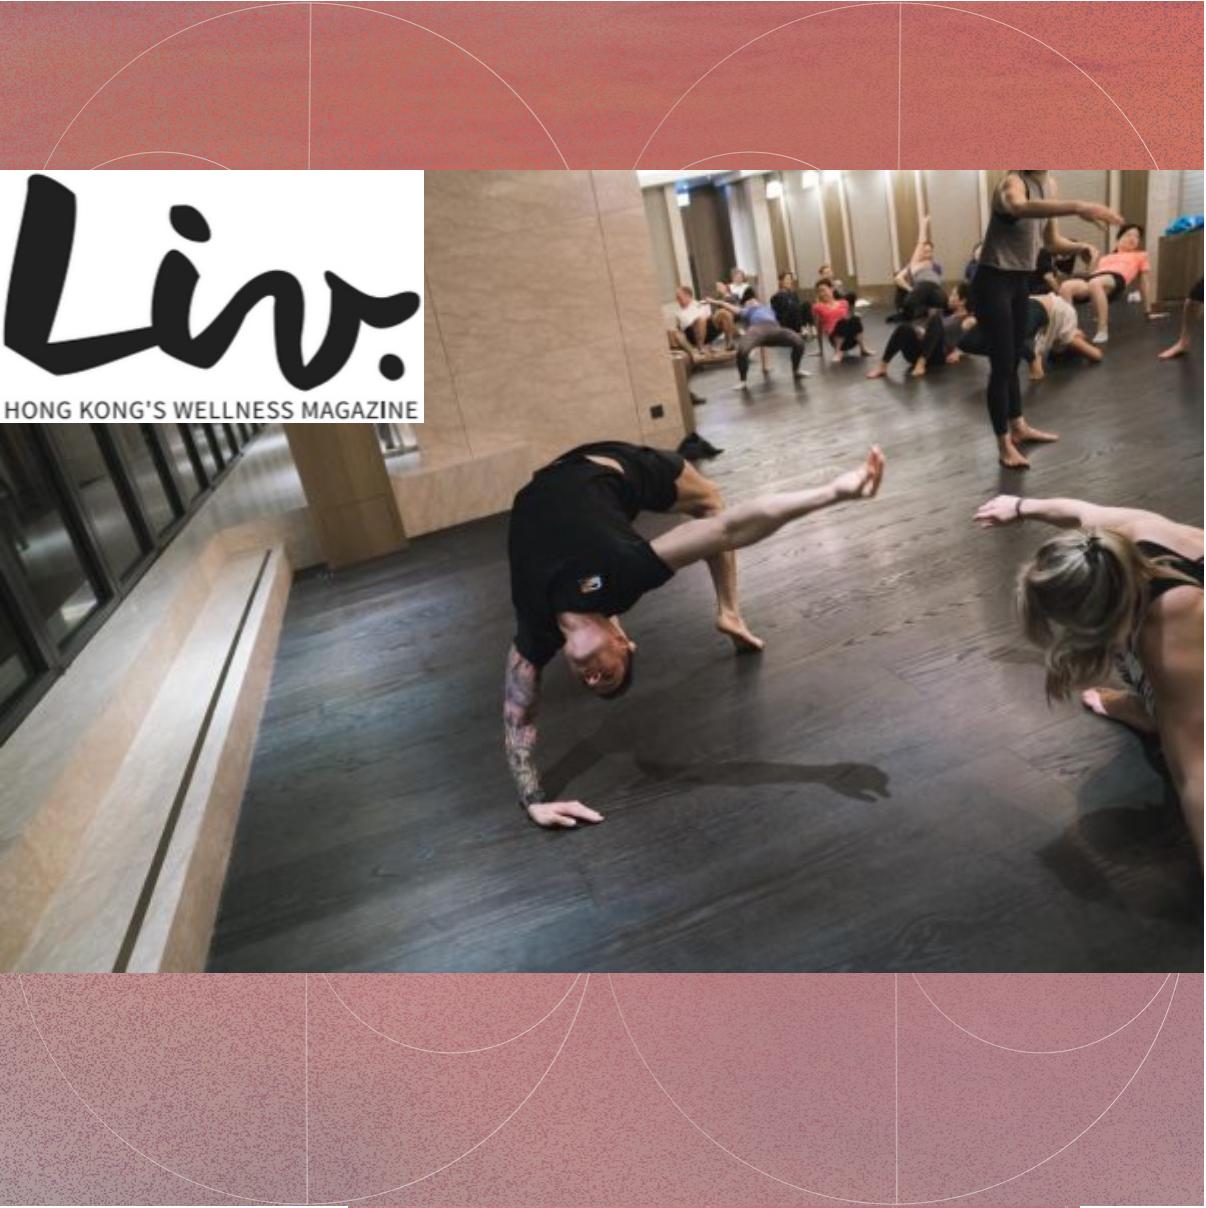 "LIV - ""... gourmet healthy canapes and juices were served on the hotel's outdoor terrace, followed by an invigorating workout: the March event featured an Introduction to Movement class with SharedSpace..."""